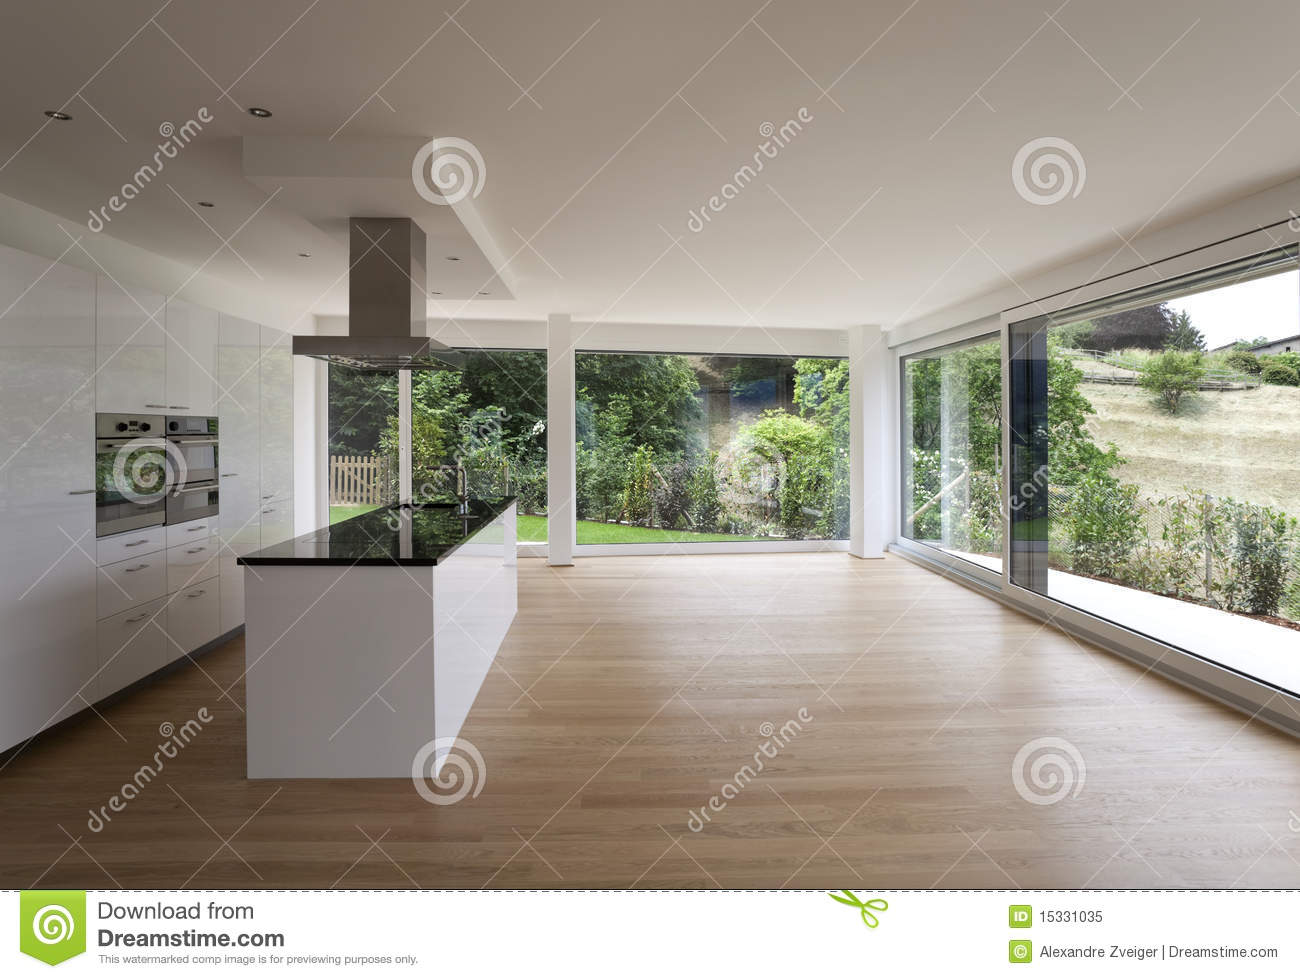 Bel int rieur d 39 une maison moderne image stock image du for Modele de decoration interieure maison